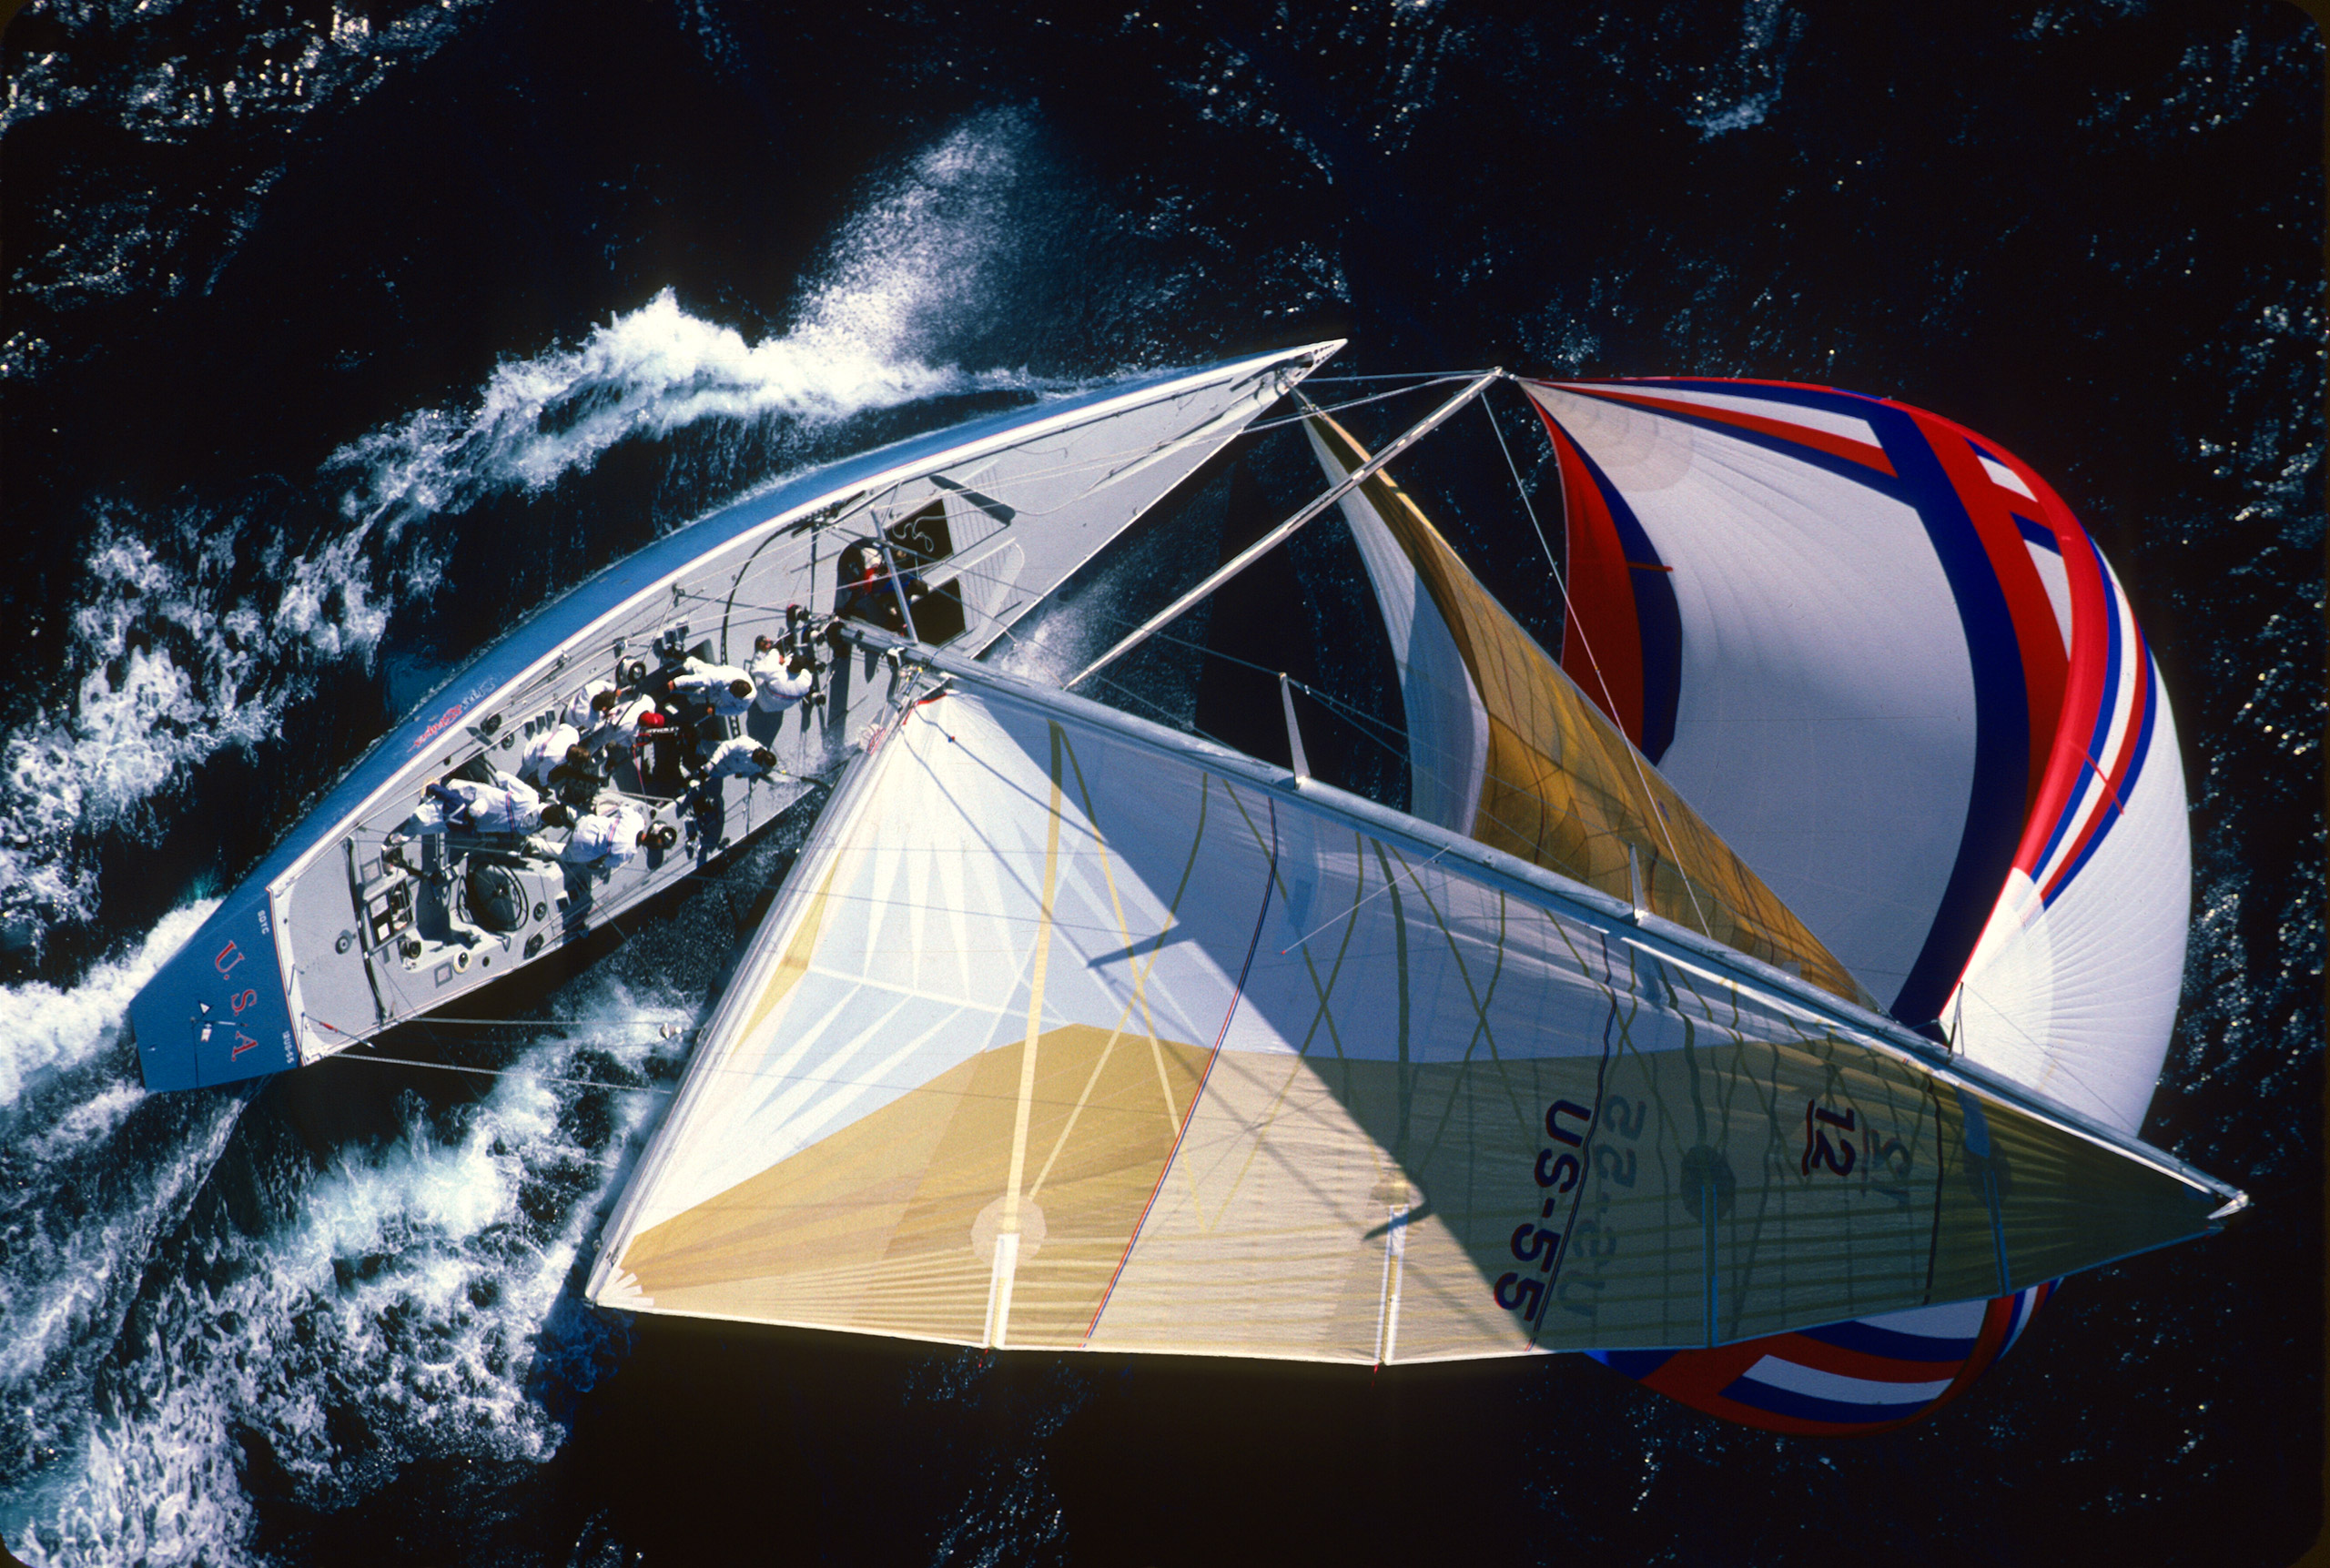 Dennis Conner helming the <em>Stars &amp; Stripes</em> off Perth, Australia, 1987